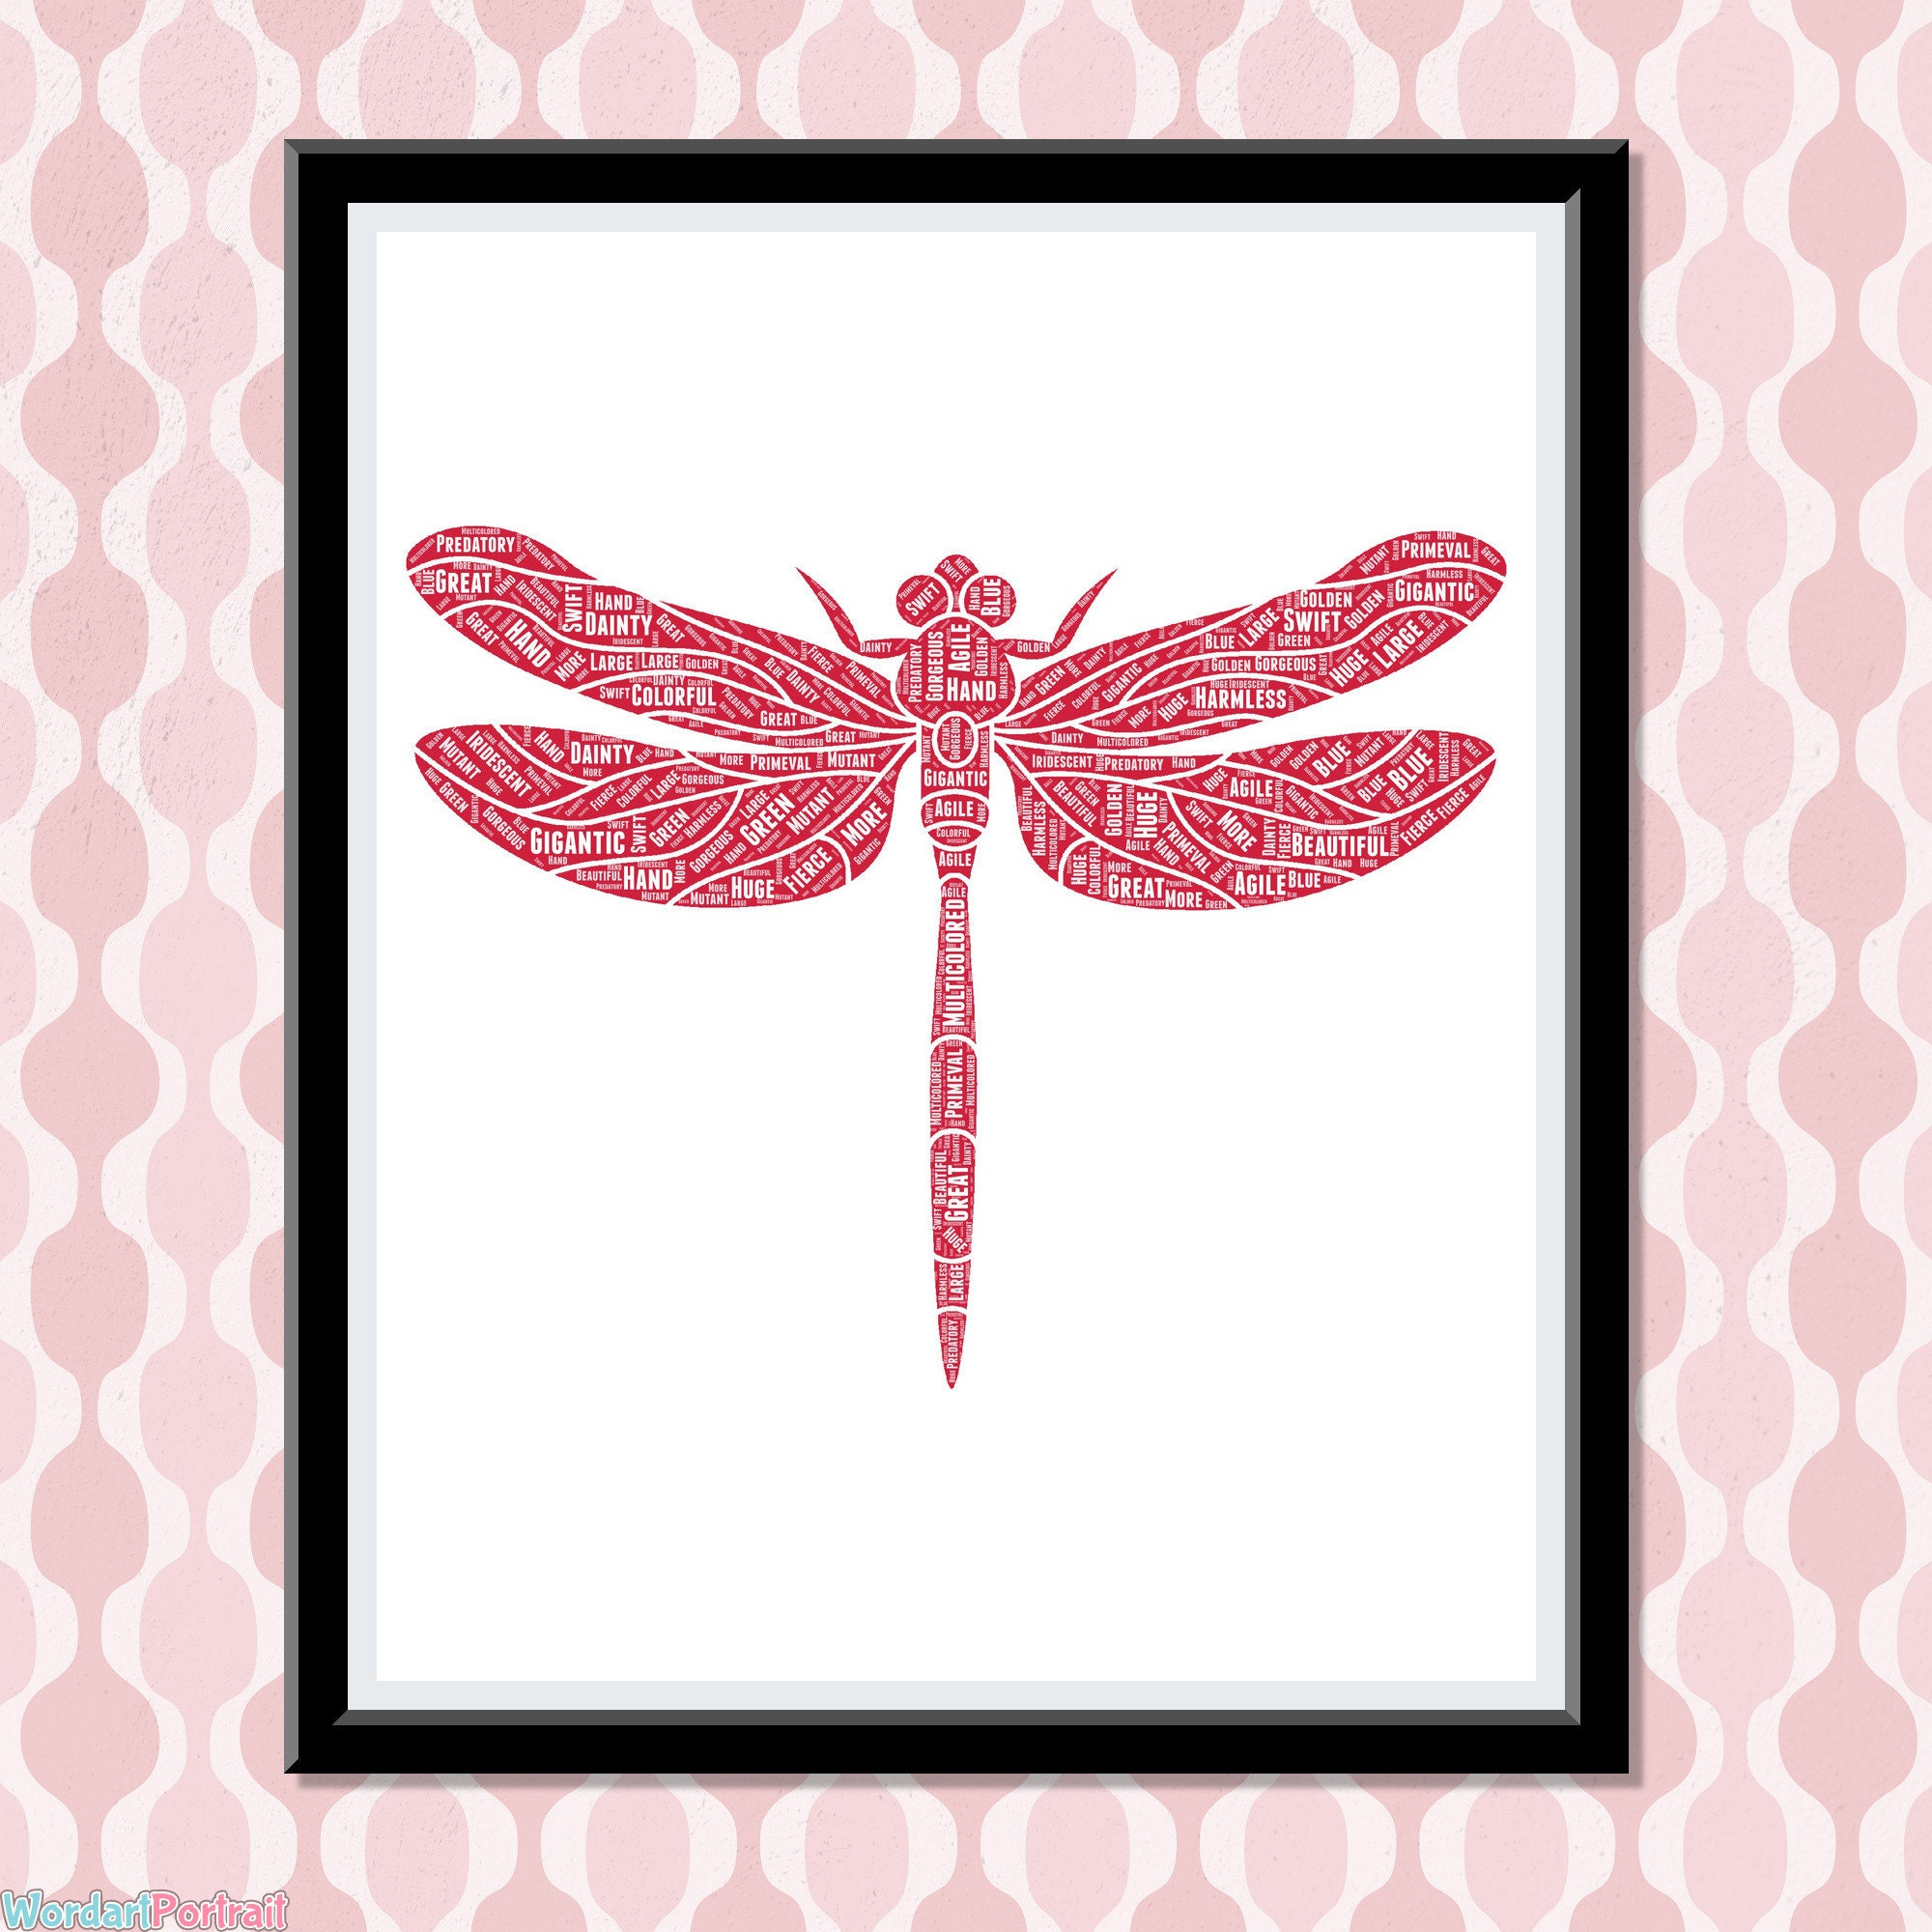 Dragonfly Gifts for Women - Personalize Dragonfly Art Print Gift- Dragon Fly Word Art-  Wall Decor dragonfly ideas For Her presents